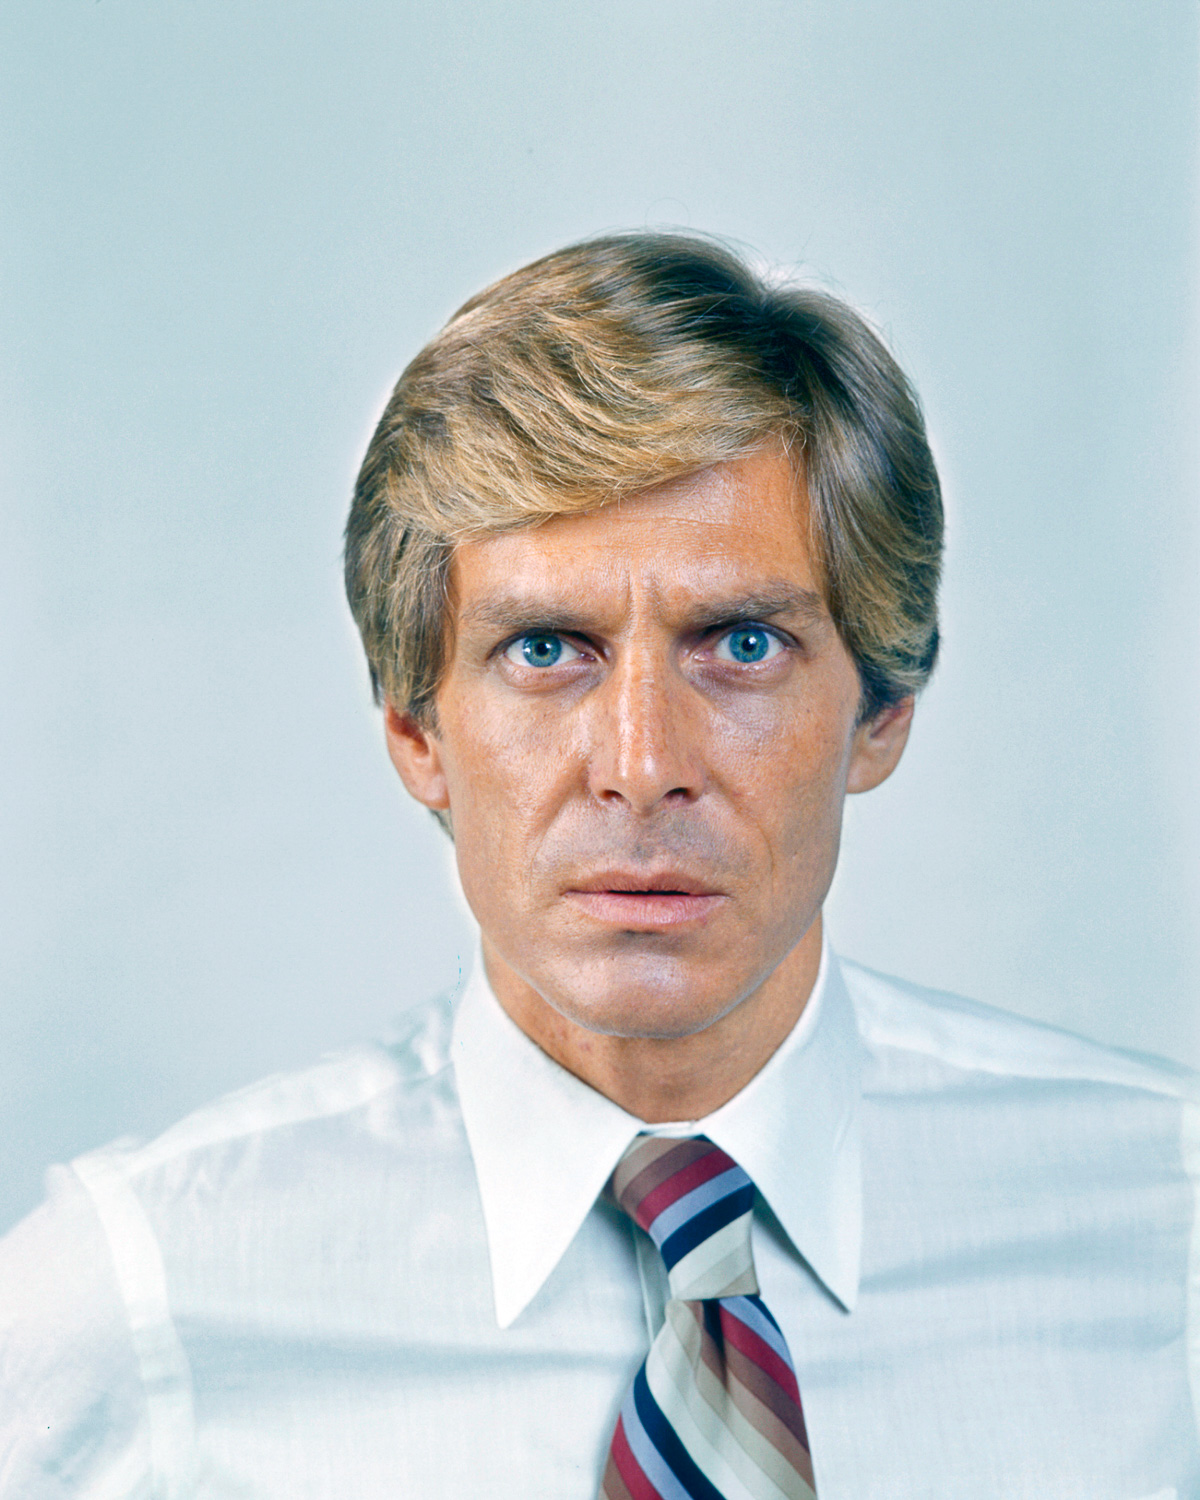 1970s Portrait of a Business Man